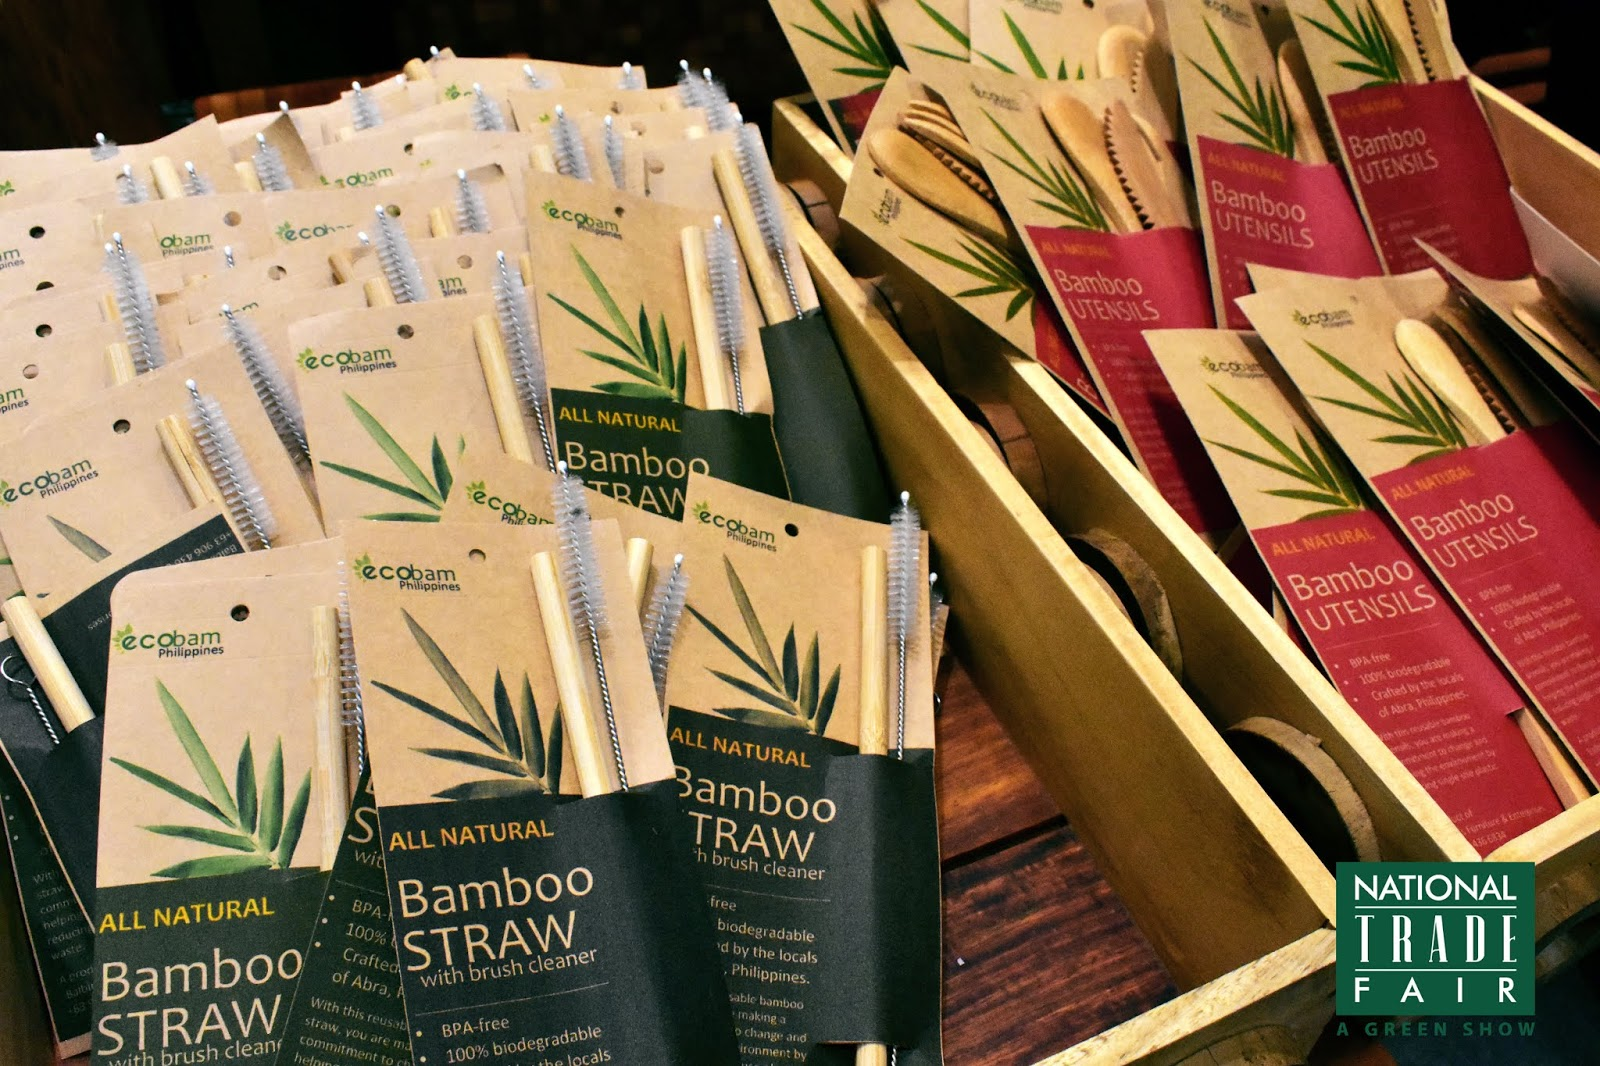 Bamboo straw and utensils by Ecobam Philippines